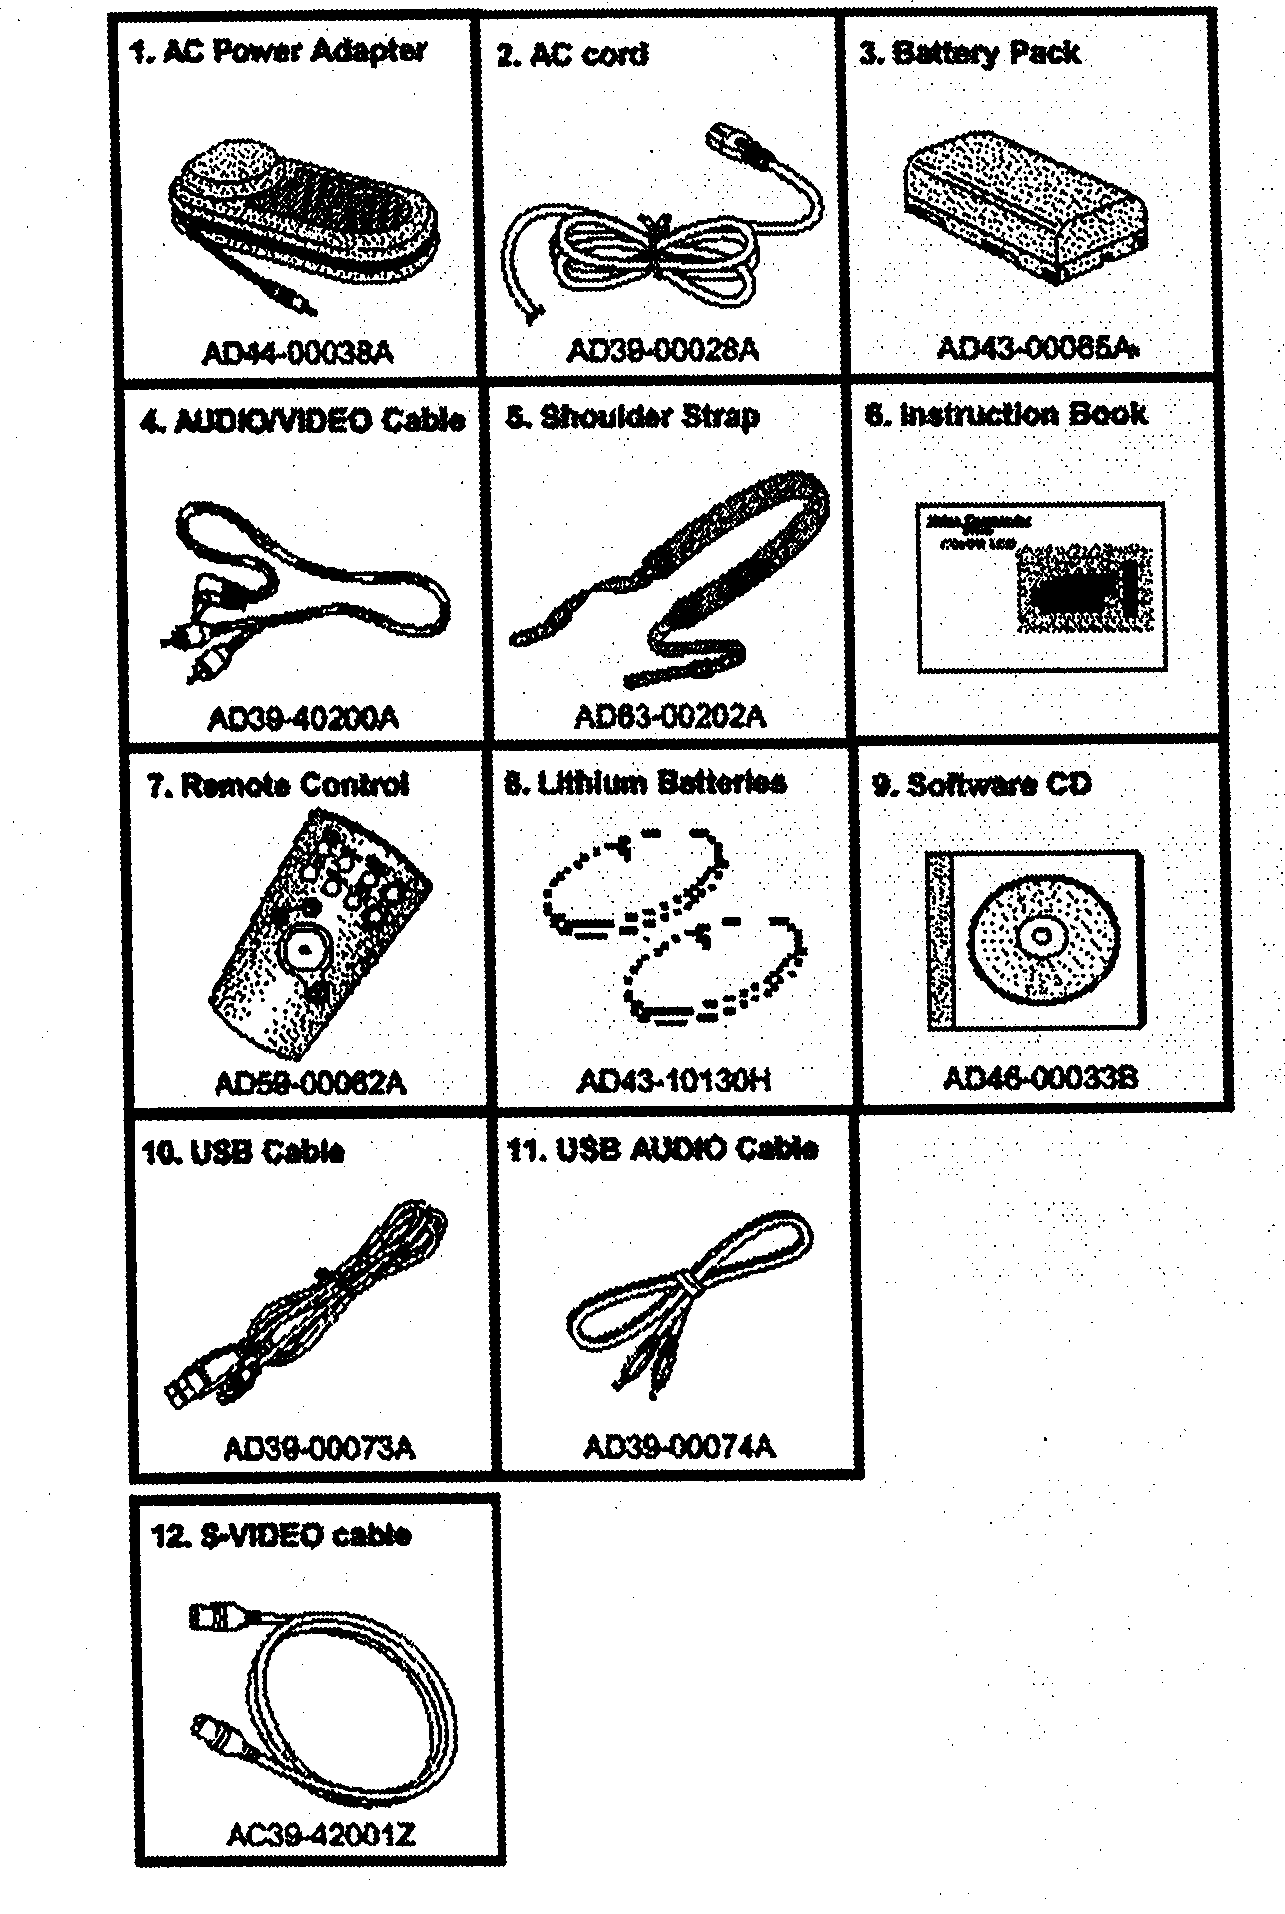 ACCESSORIES Diagram & Parts List for Model scl810 Samsung